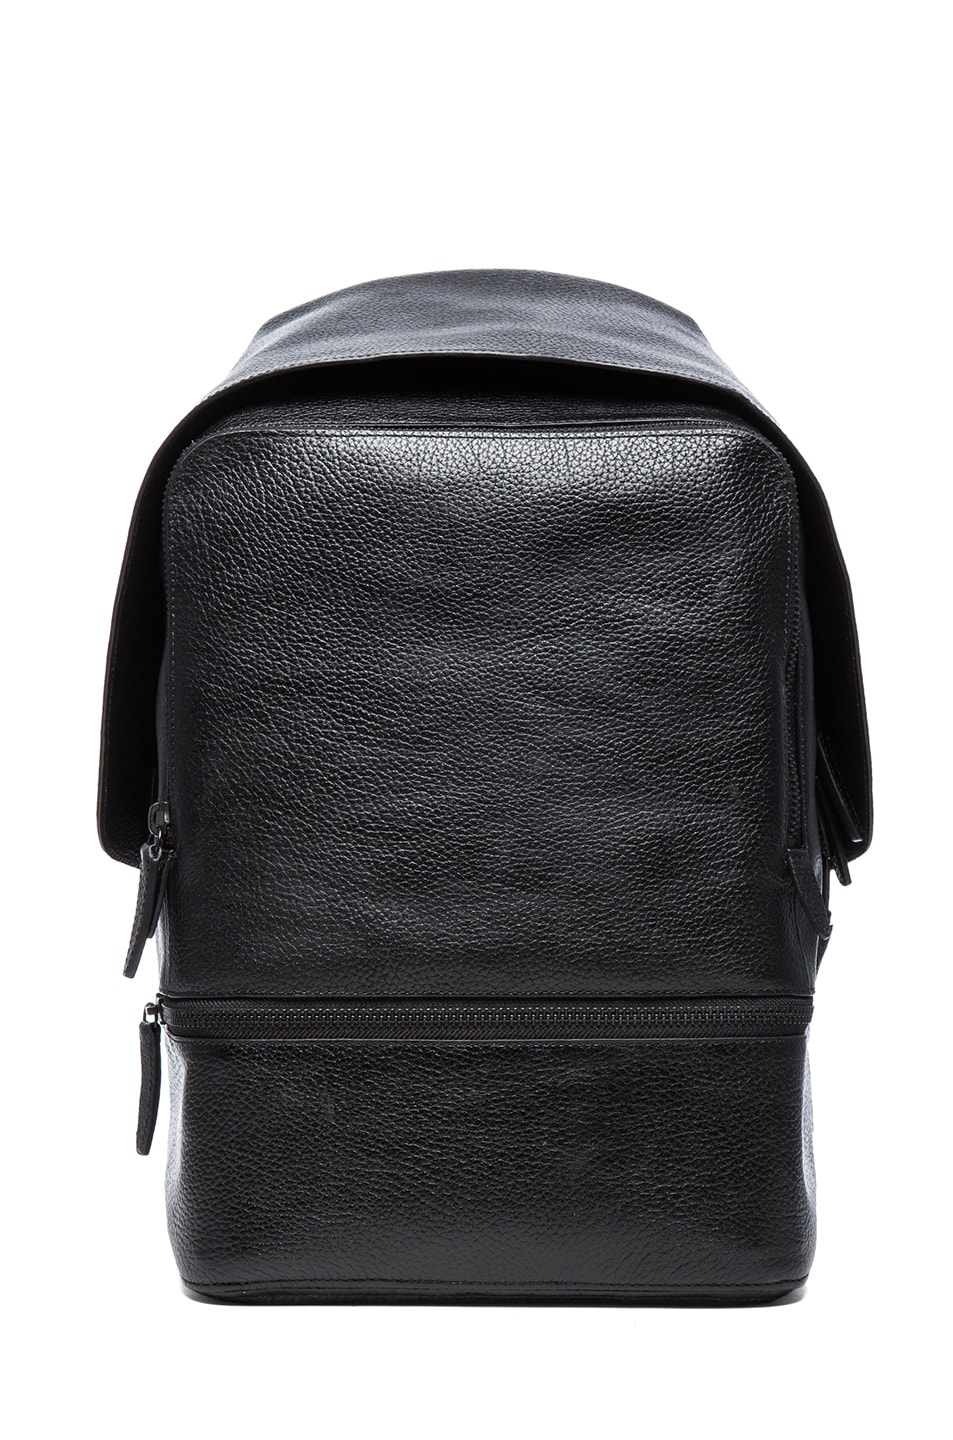 Image 1 of 3.1 phillip lim 31 Hour Backpack in Black